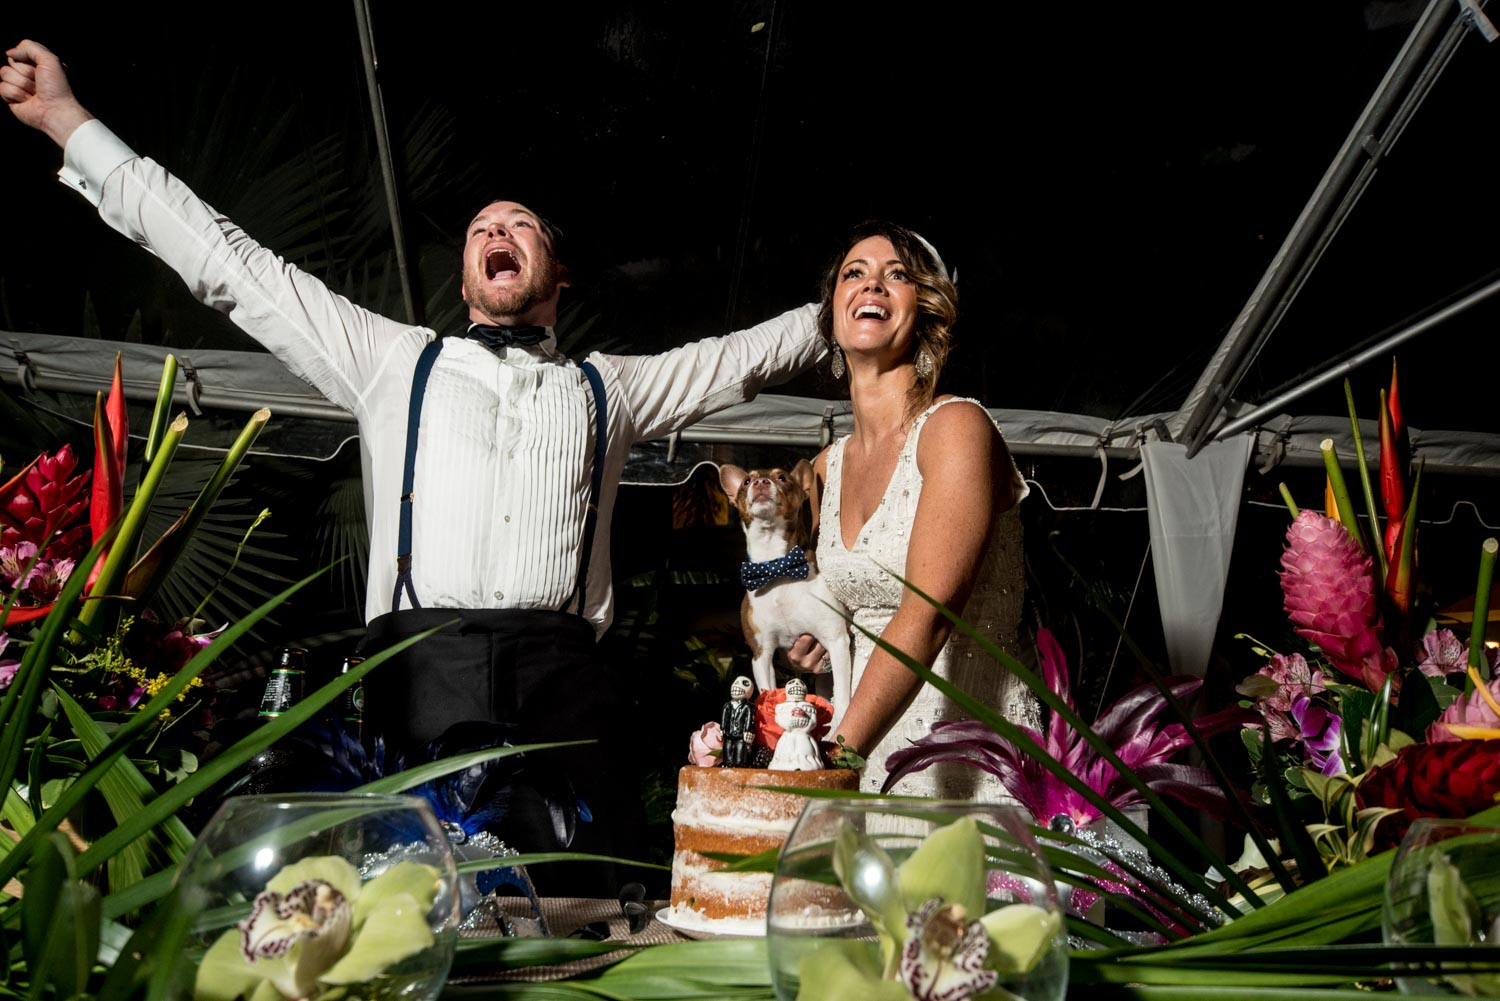 Groom standing next to the bride holding their dog while they cut the cake. The groom is cheering with his arms reaching outwards.